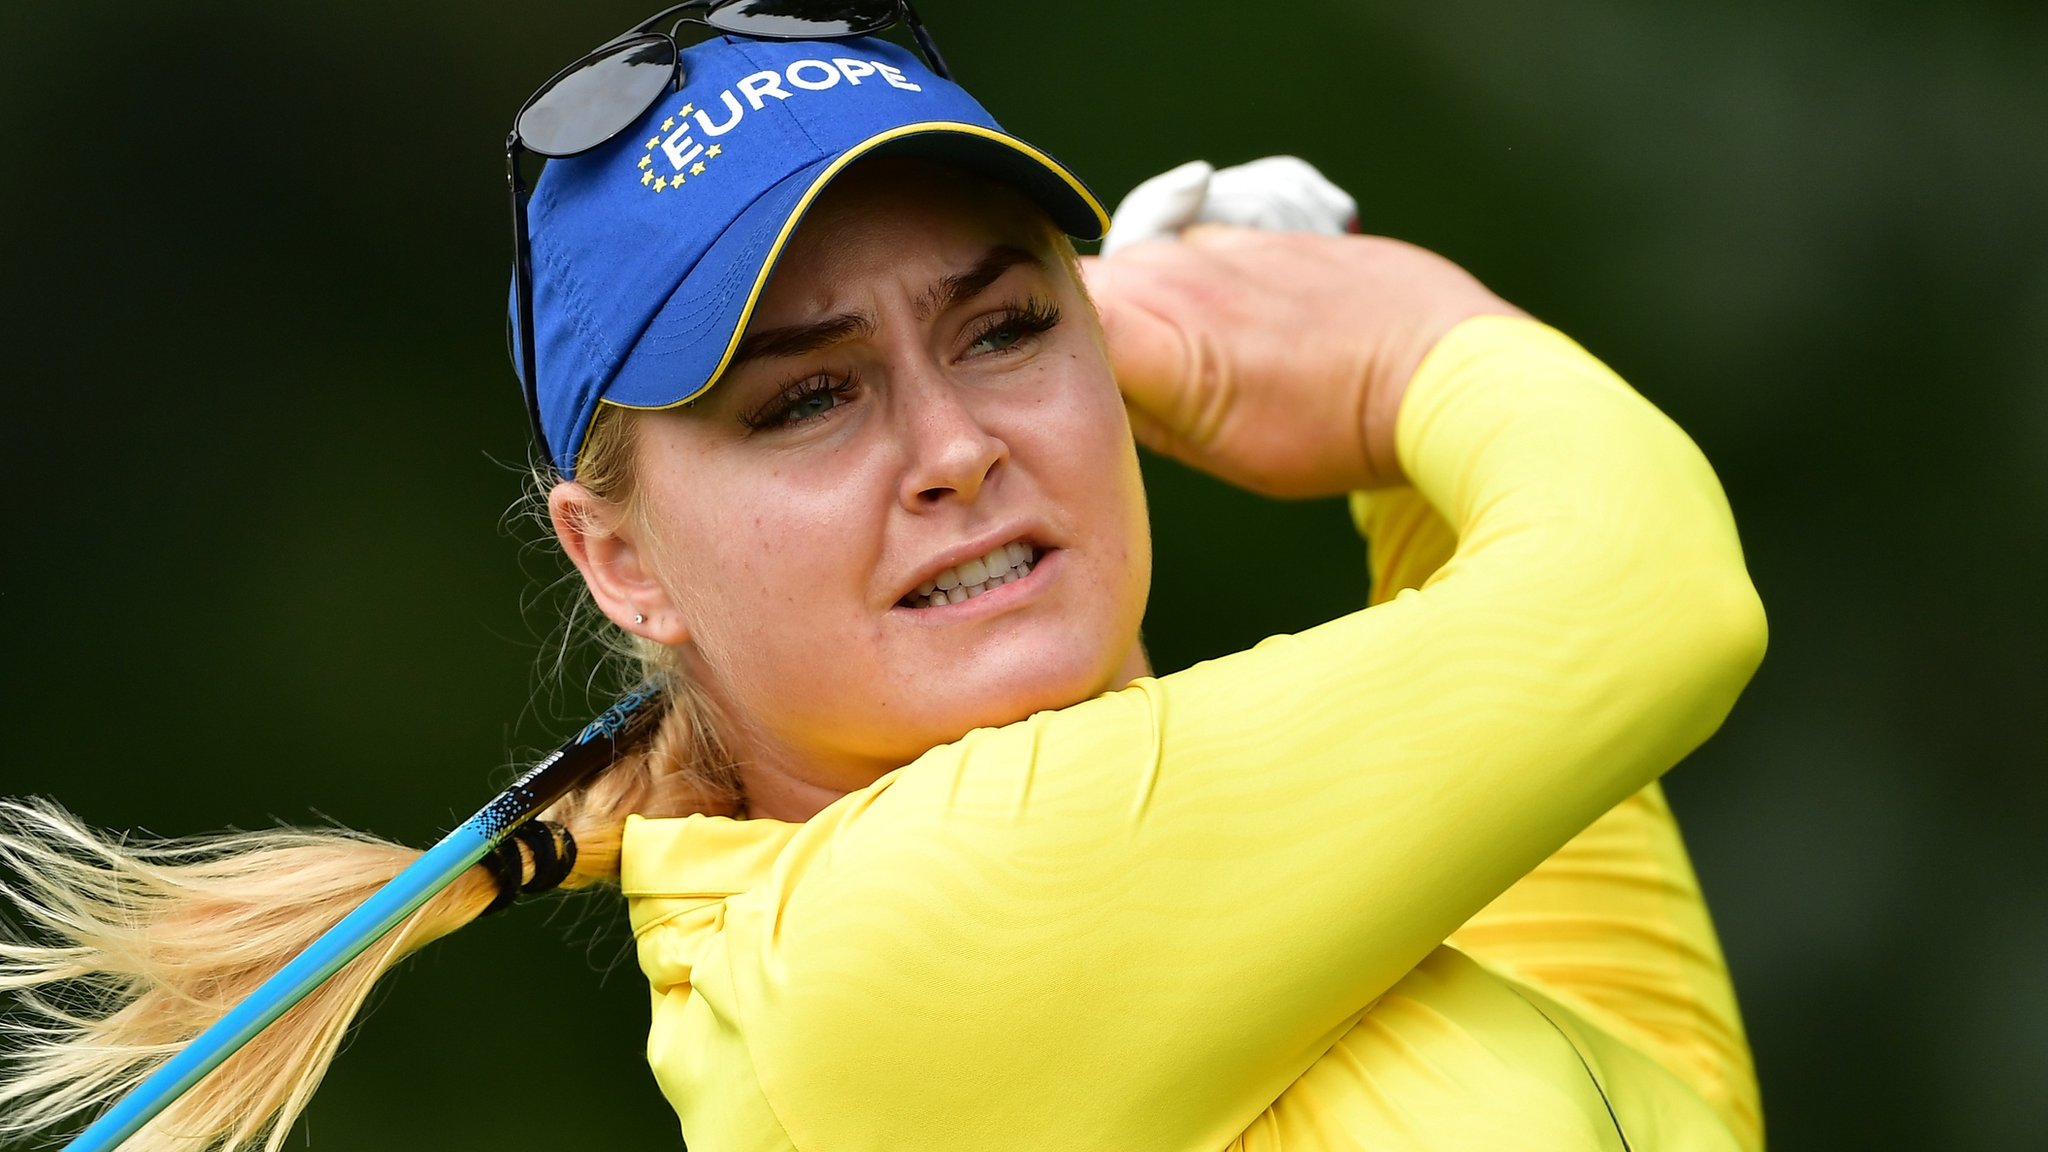 'Sticks and stones can break my bones' - Hull ready for hostile Solheim Cup crowd